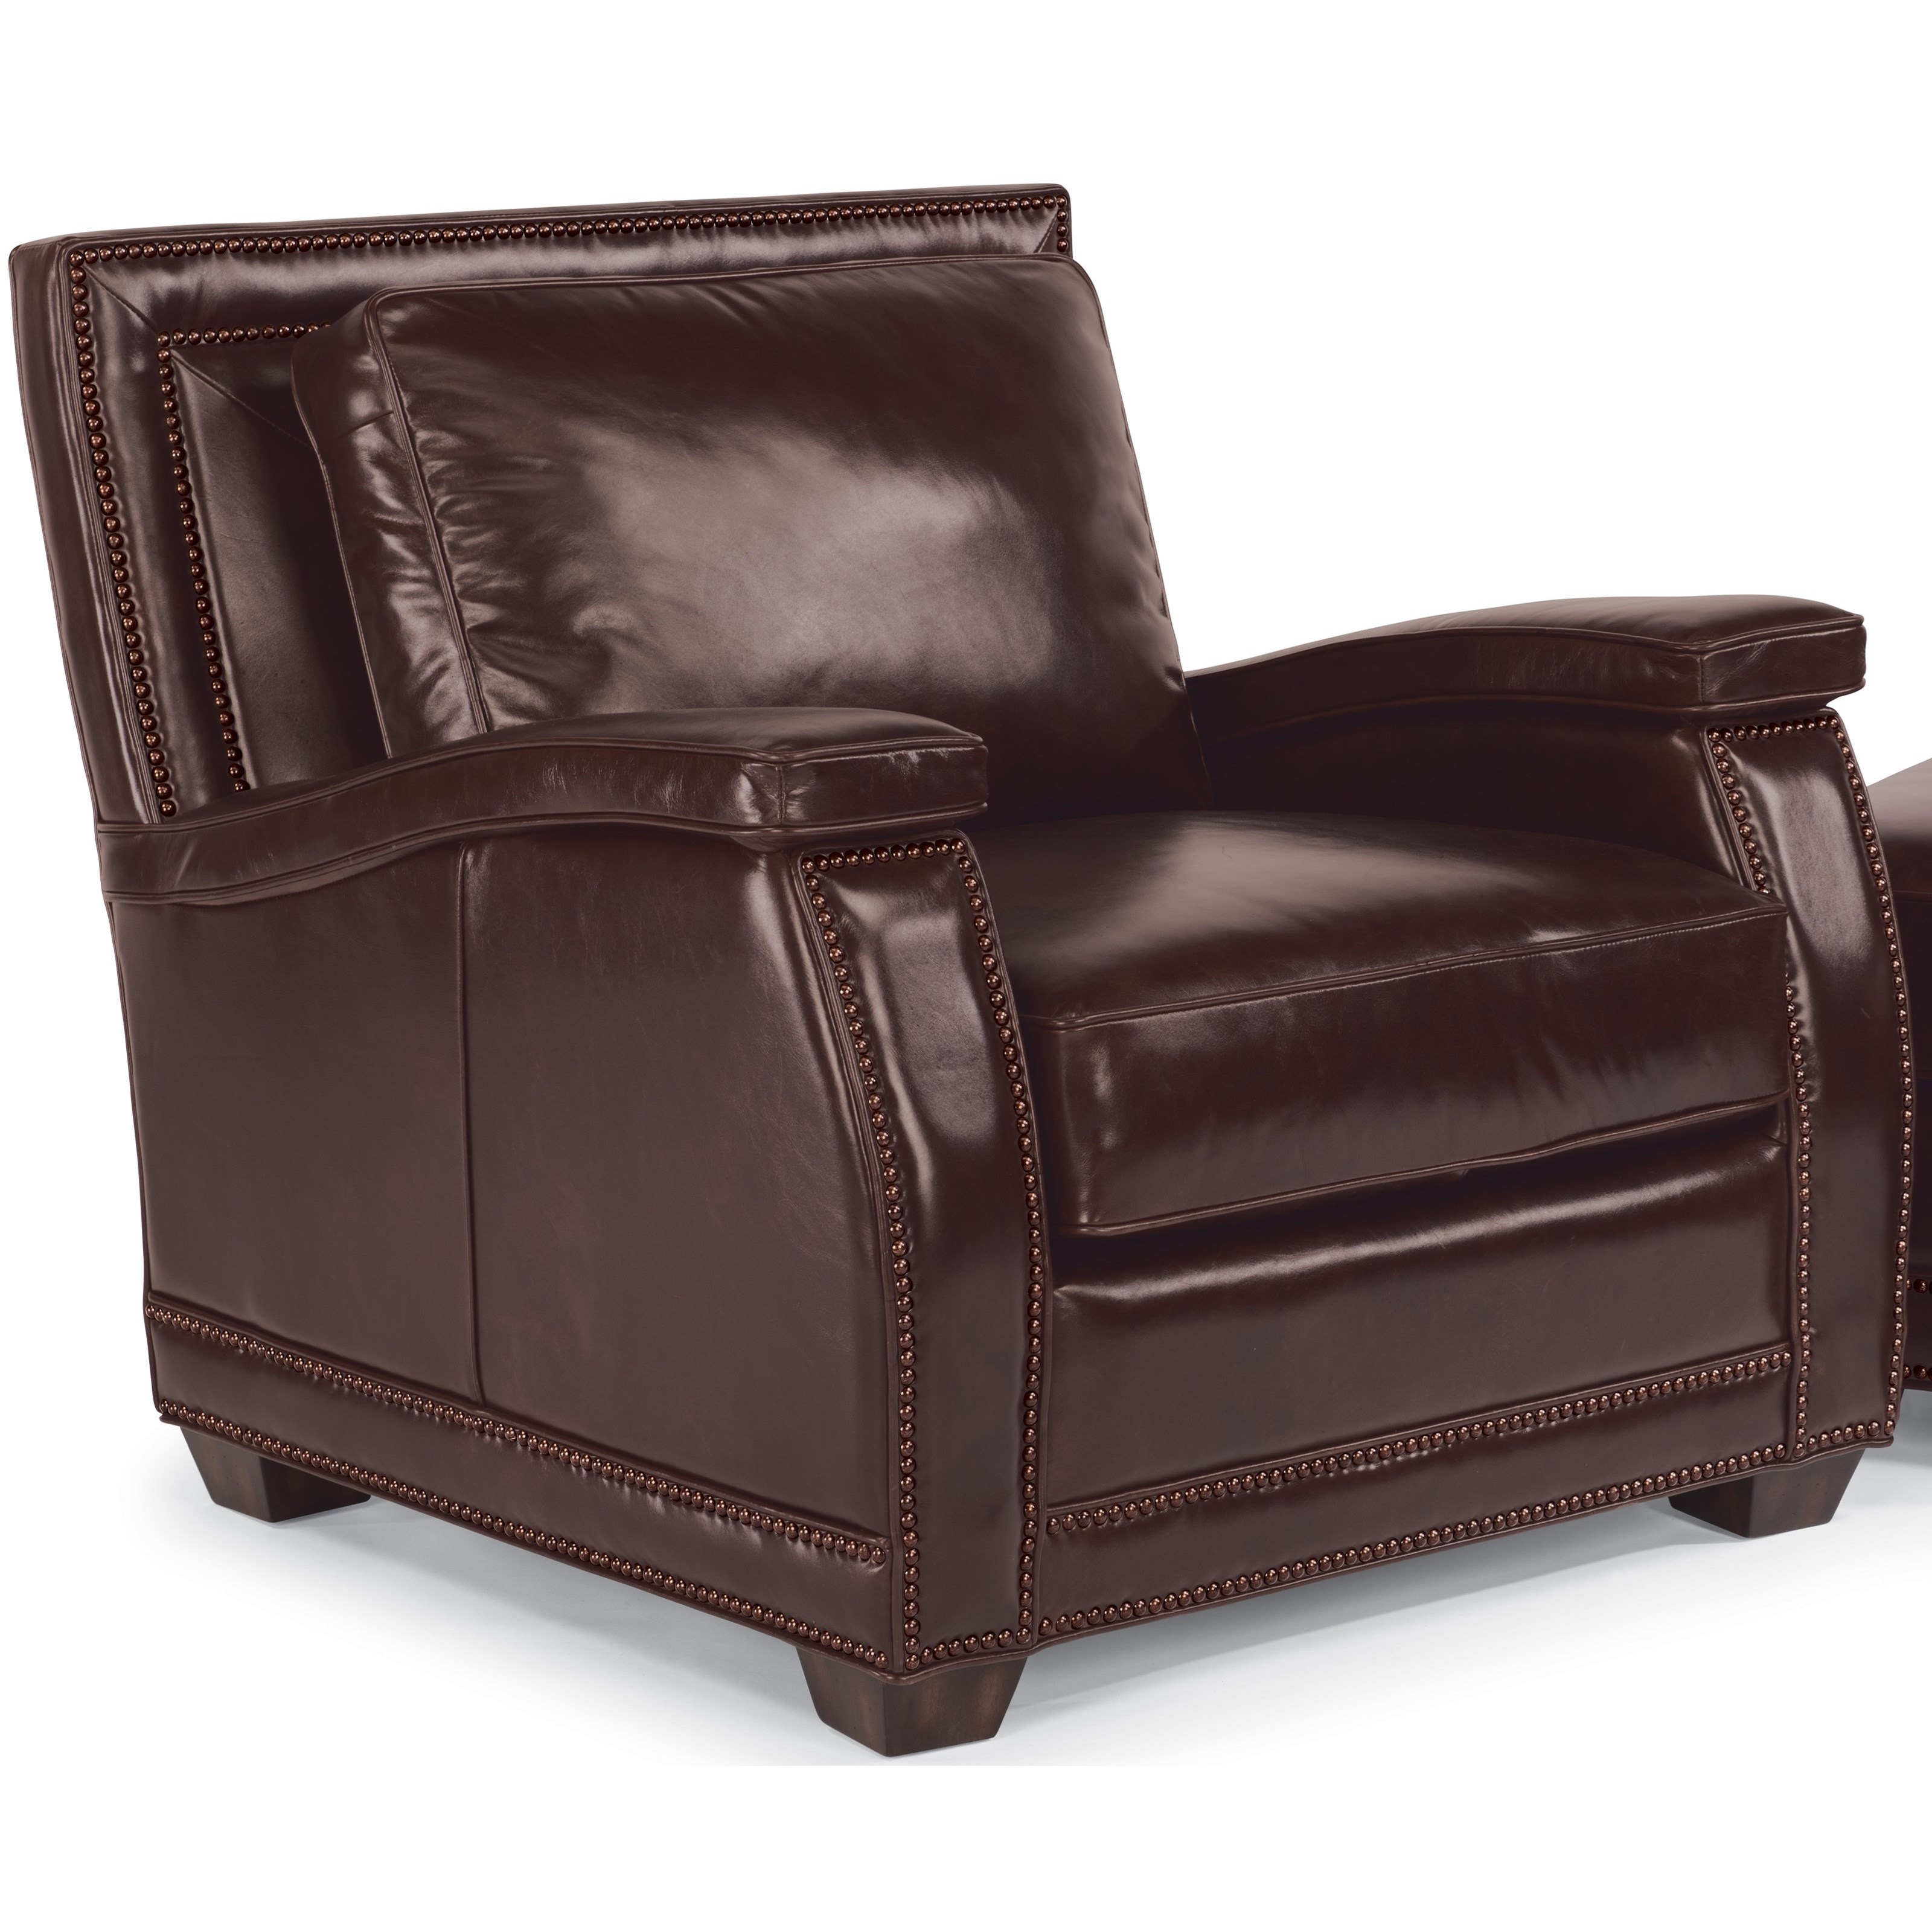 Flexsteel Latitudes-Raleigh Leather Chair  - Item Number: 1260-10